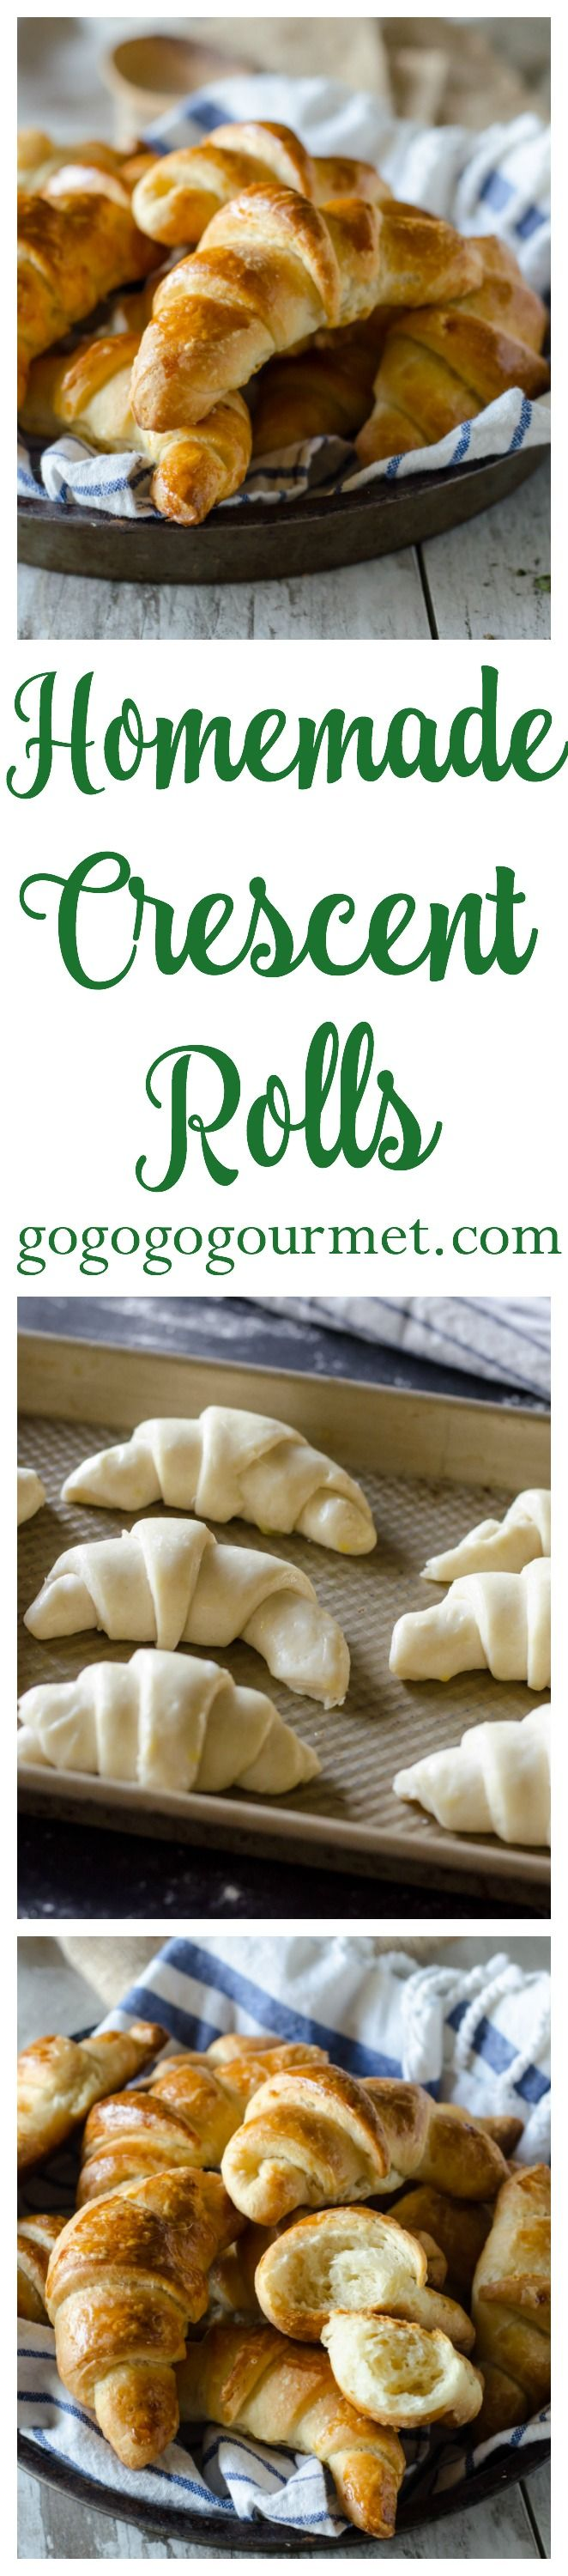 These homemade crescent rolls are easier than you think to make- most of the work is chilling time! You may never buy those pop-cans again! Homemade Crescent Rolls | Go Go Go Gourmet @gogogogourmet